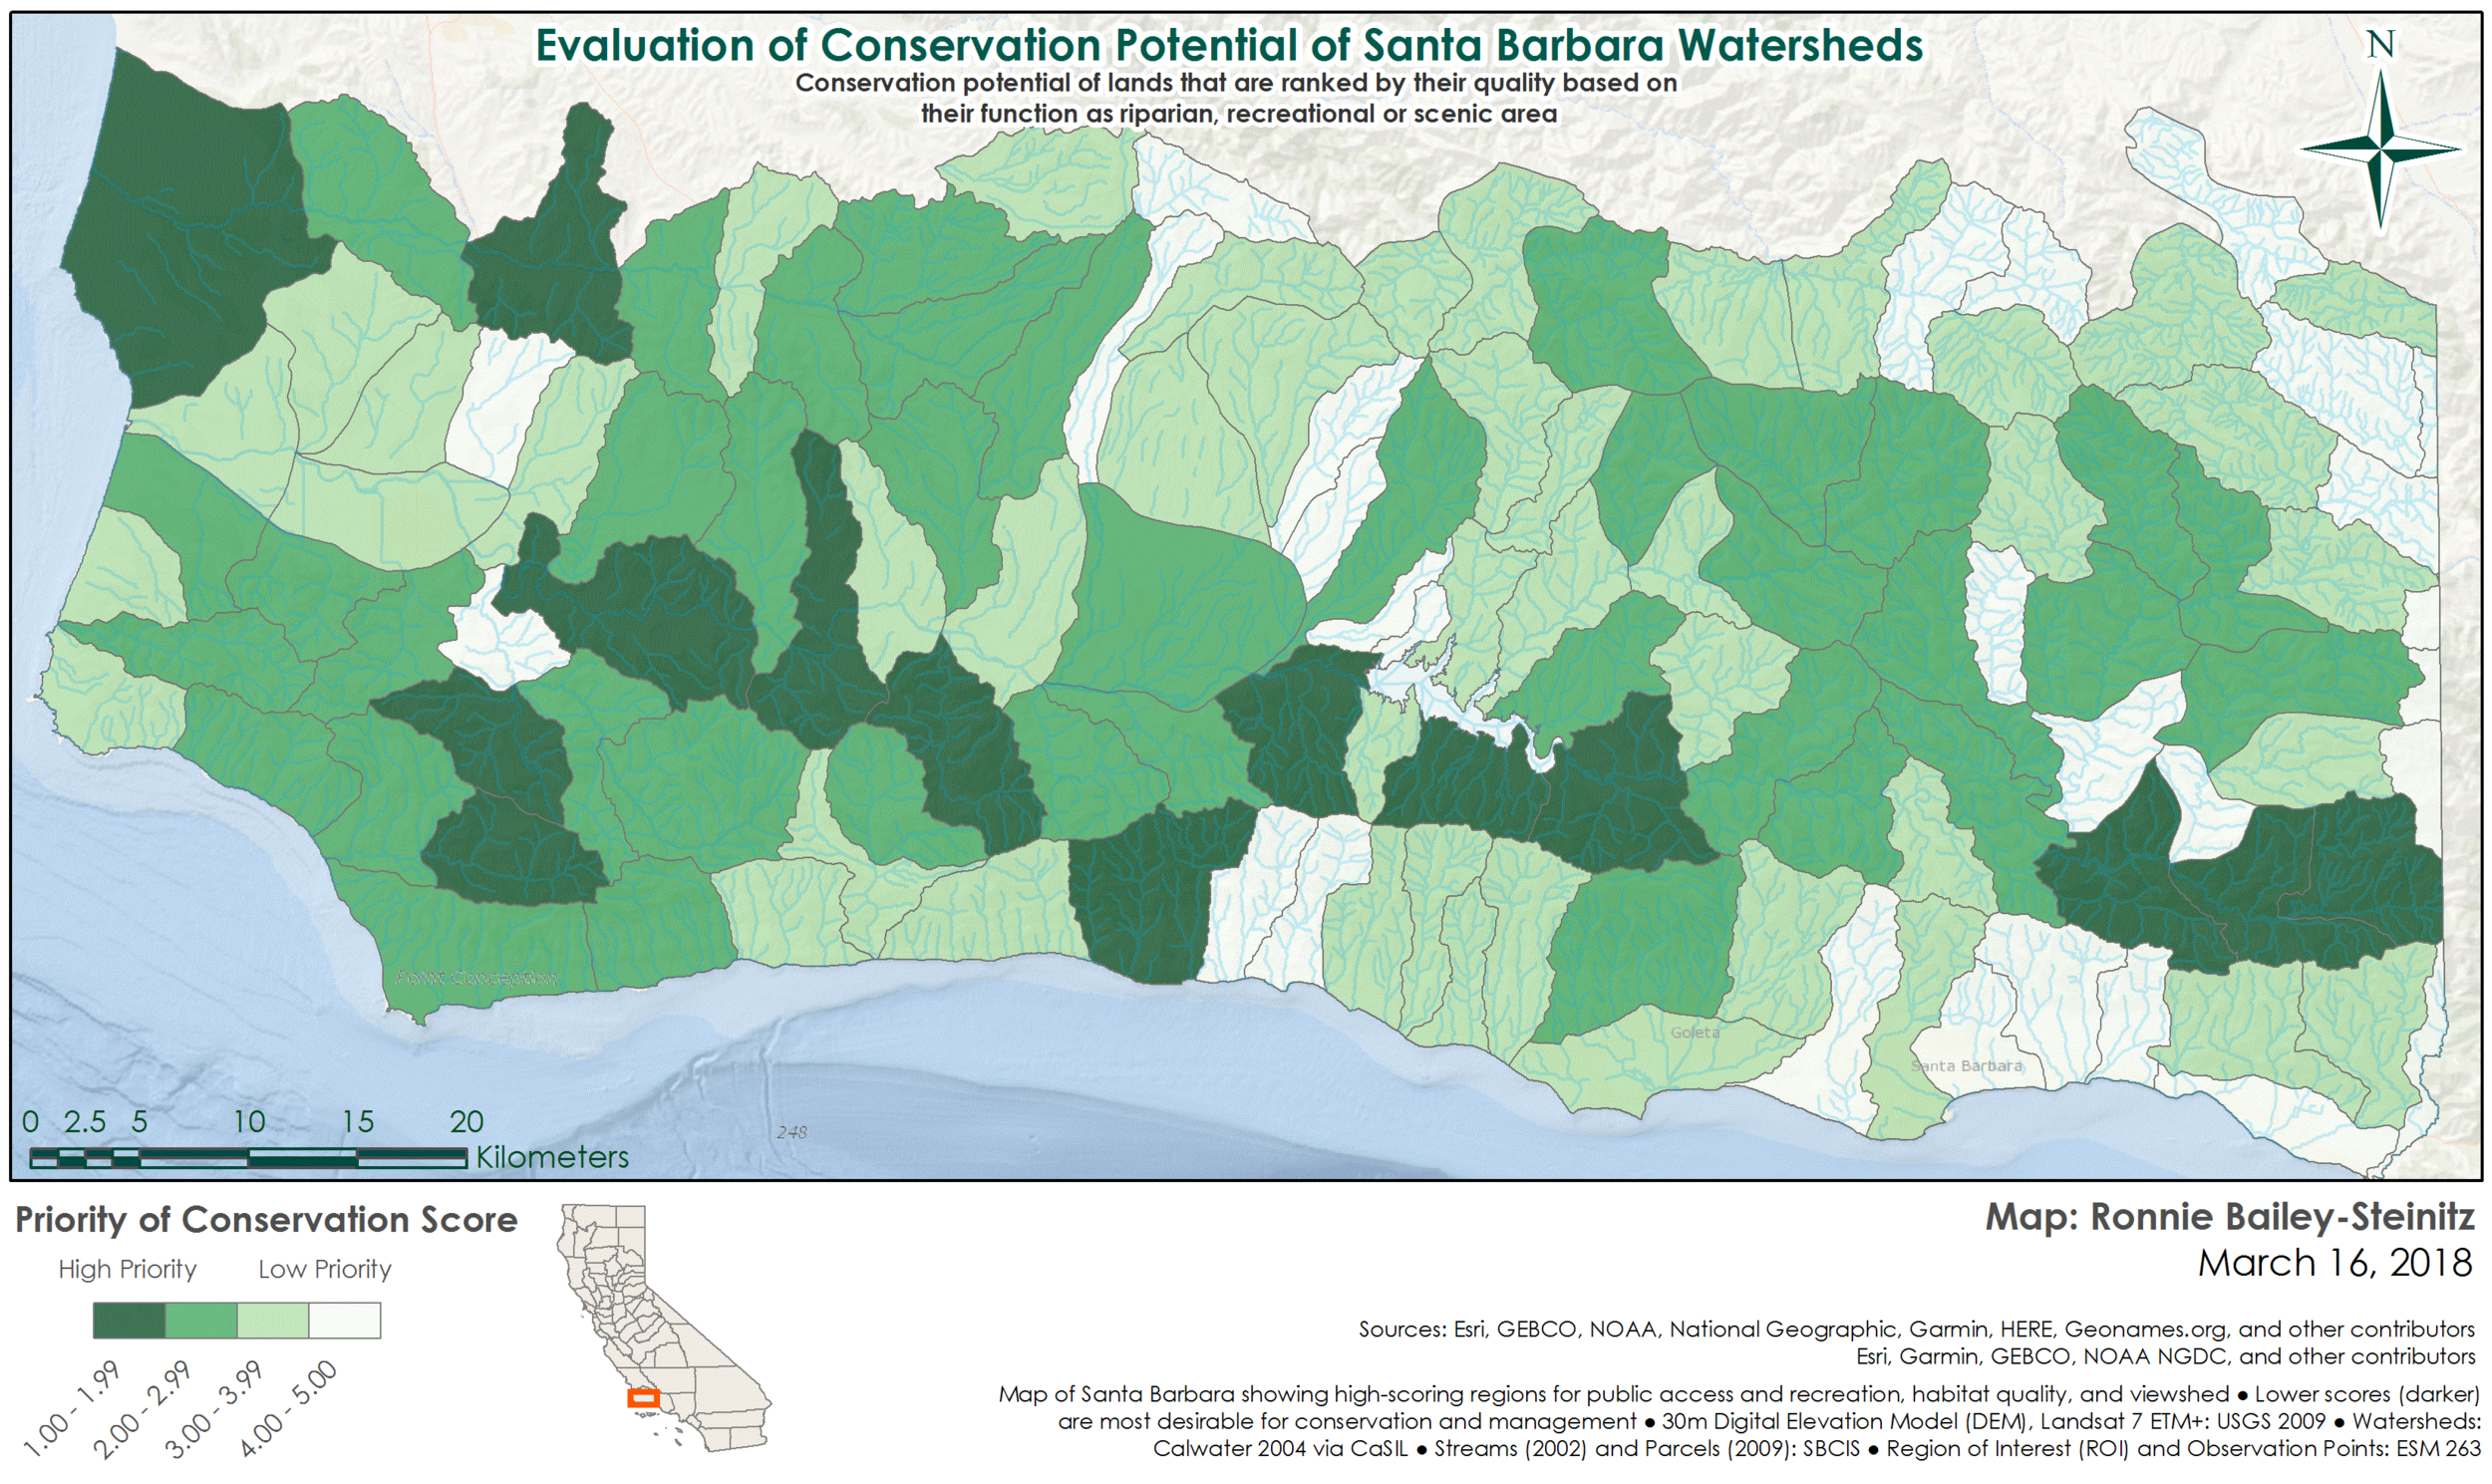 Evaluation of Conservation Potential in Santa Barbara - GIS analysis and modeling, Winter 2018